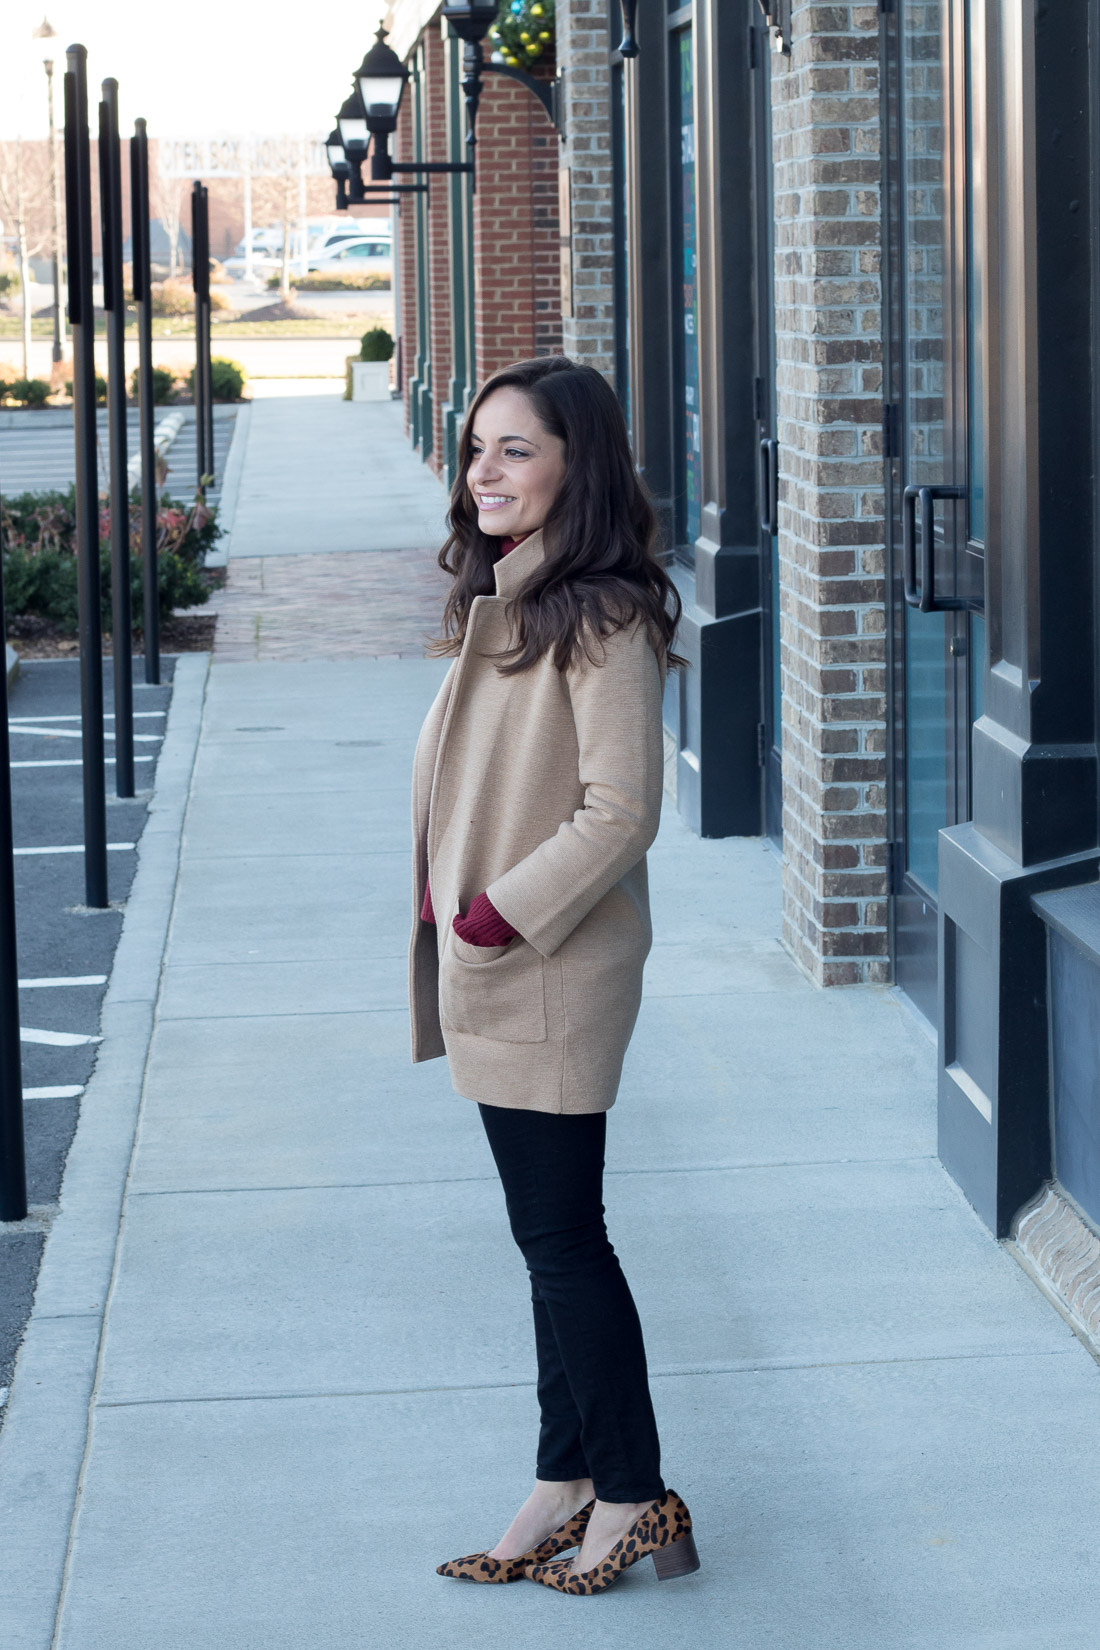 J. Crew Sweater for women, styled by Brooke of Pumps & Push-Ups